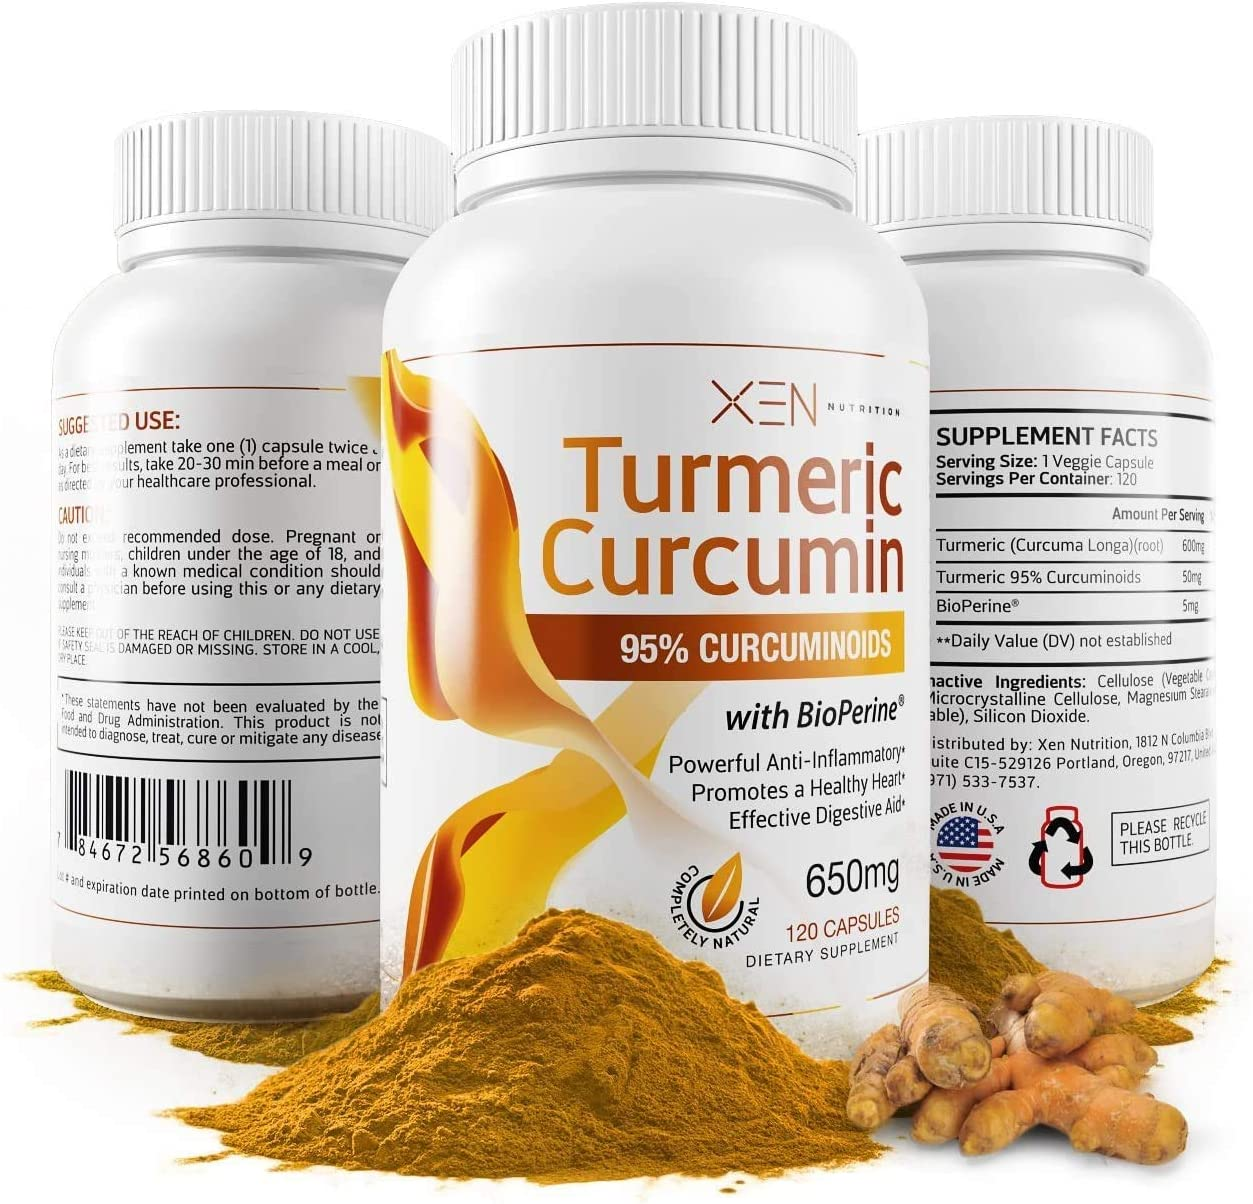 Turmeric Curcumin w BioPerine – 95 , Highest Grade – 2 Month Supply – 650mg – 120 Caps – Xen Nutrition – Anti-inflammatory Herbal Supplement – Digestive Aid, Joint Pain Relief, Organic Antioxidant